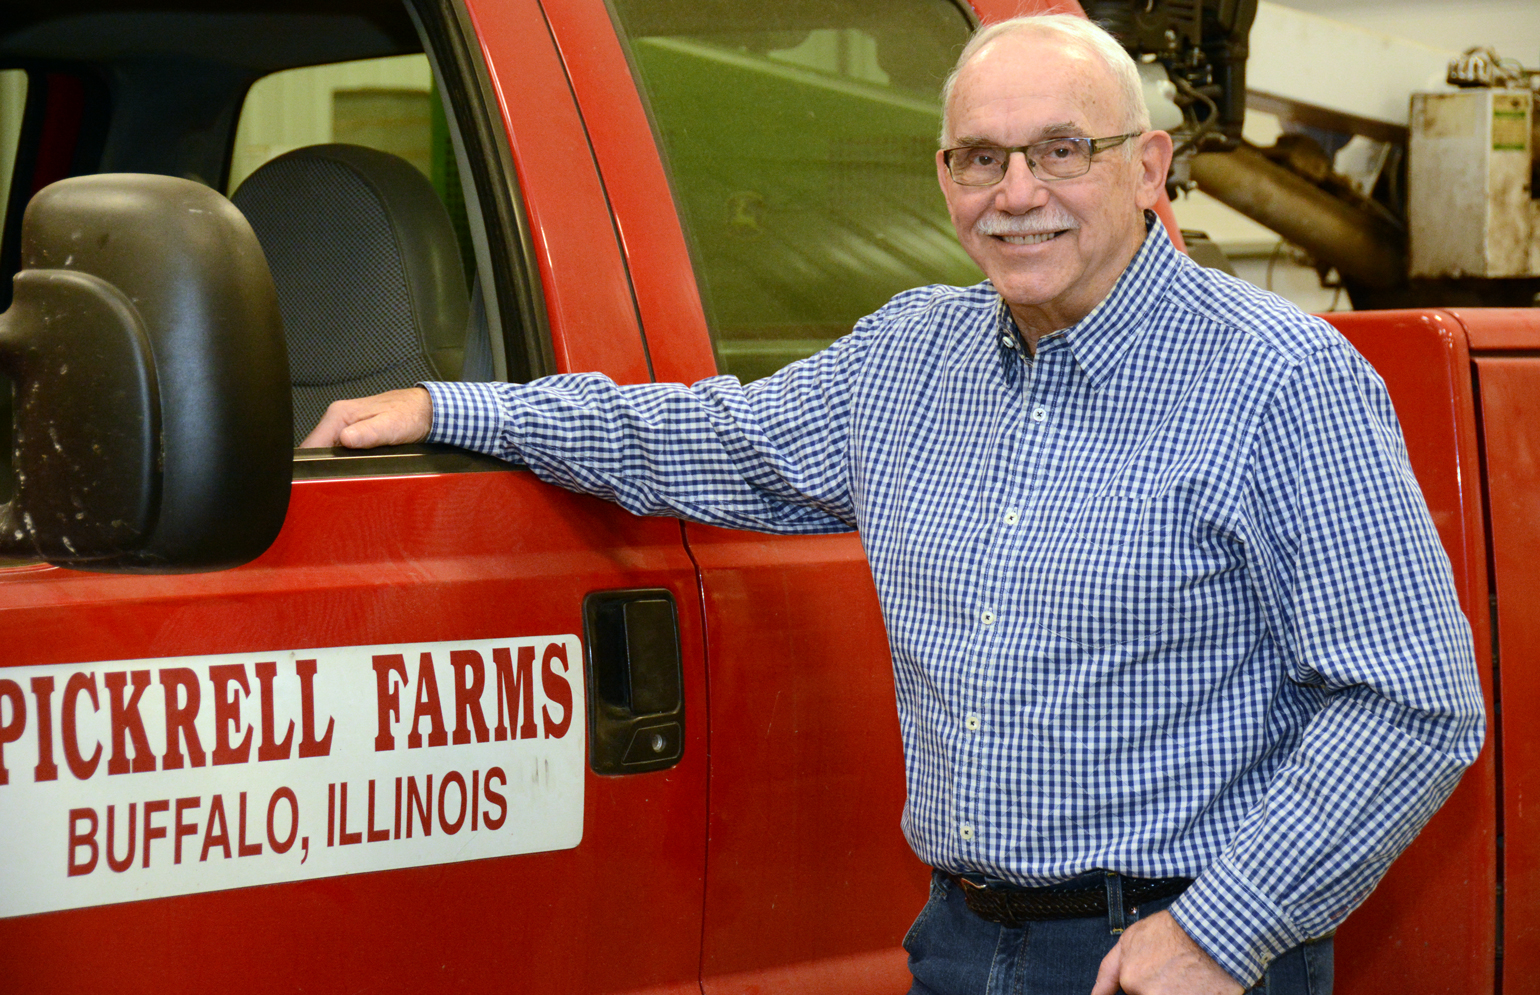 Joe Pickrell standing next to Pickrell Farms truck